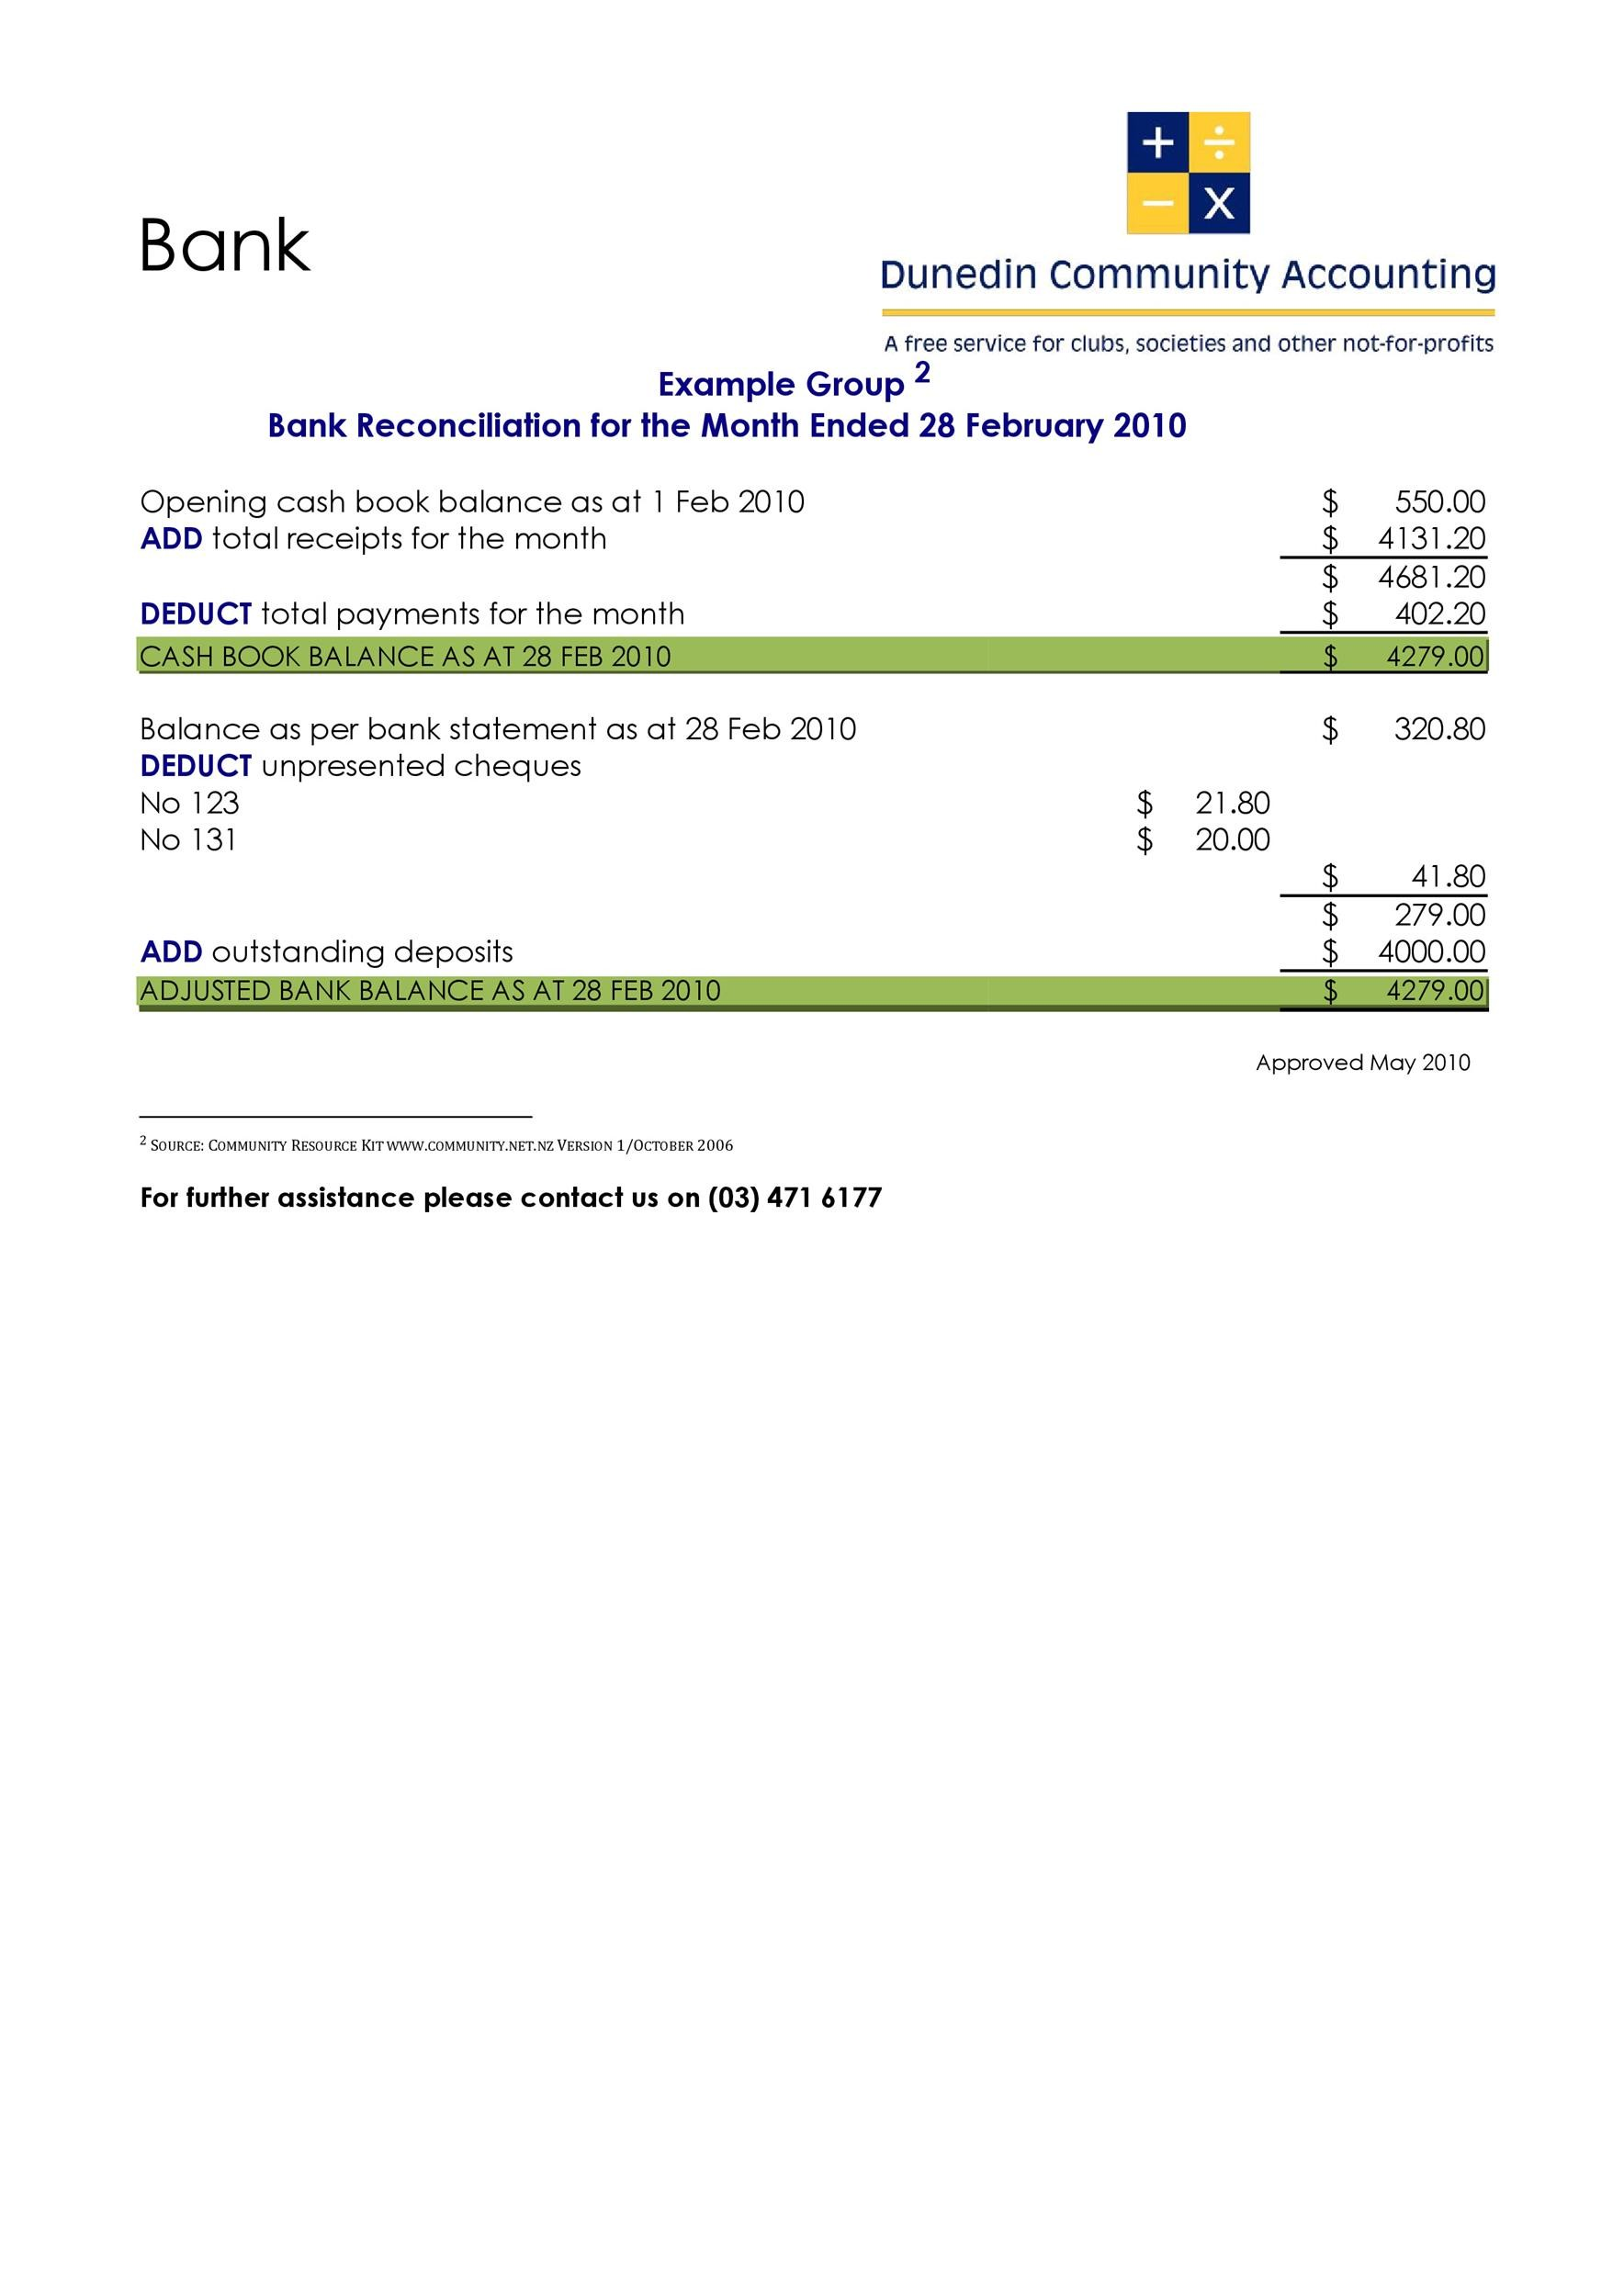 50+ Bank Reconciliation Examples  Templates 100 Free - bank reconciliation example